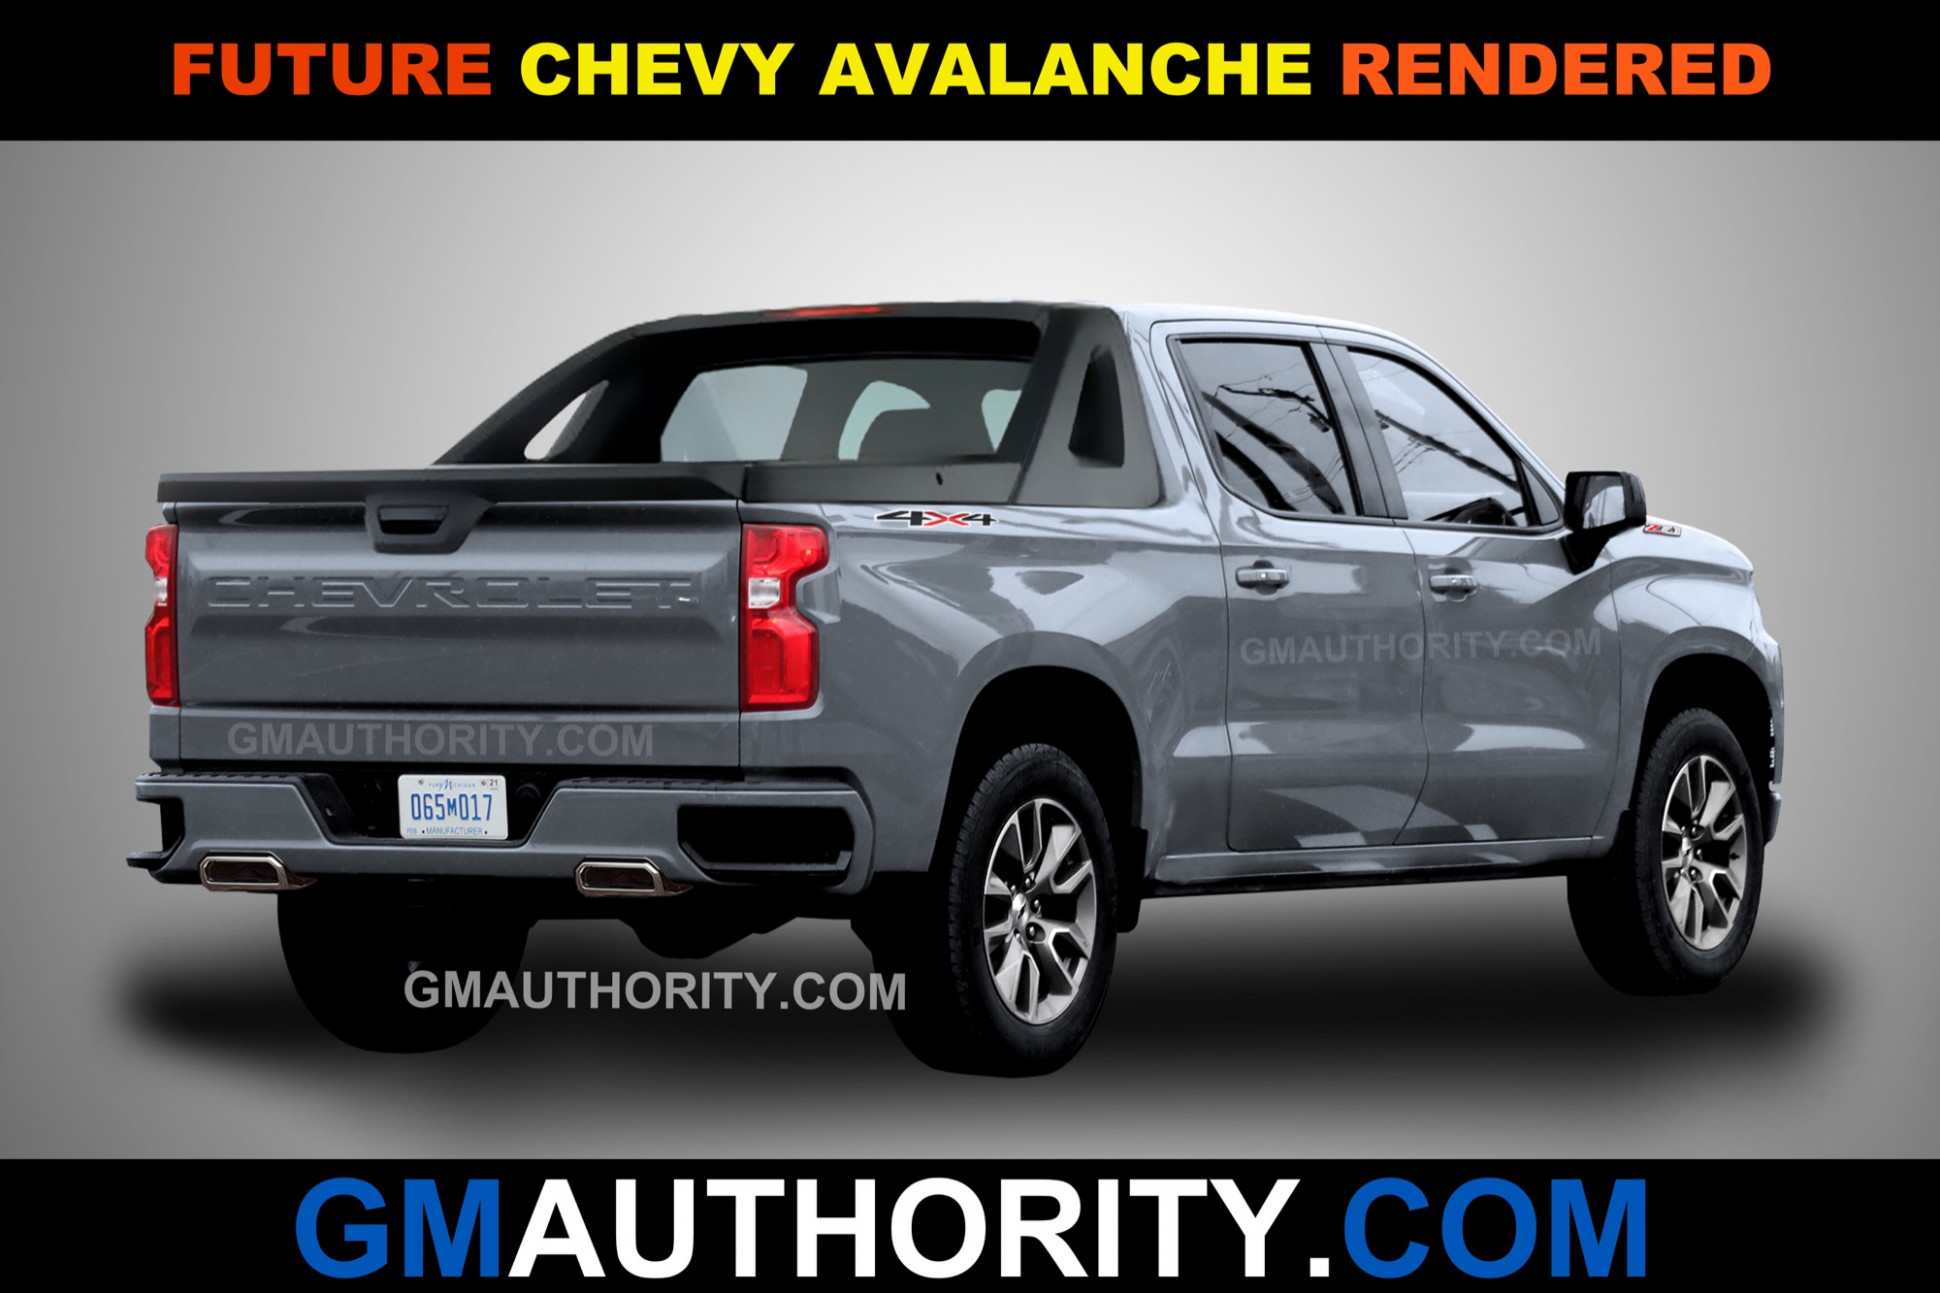 Release 2022 Chevy Avalanche